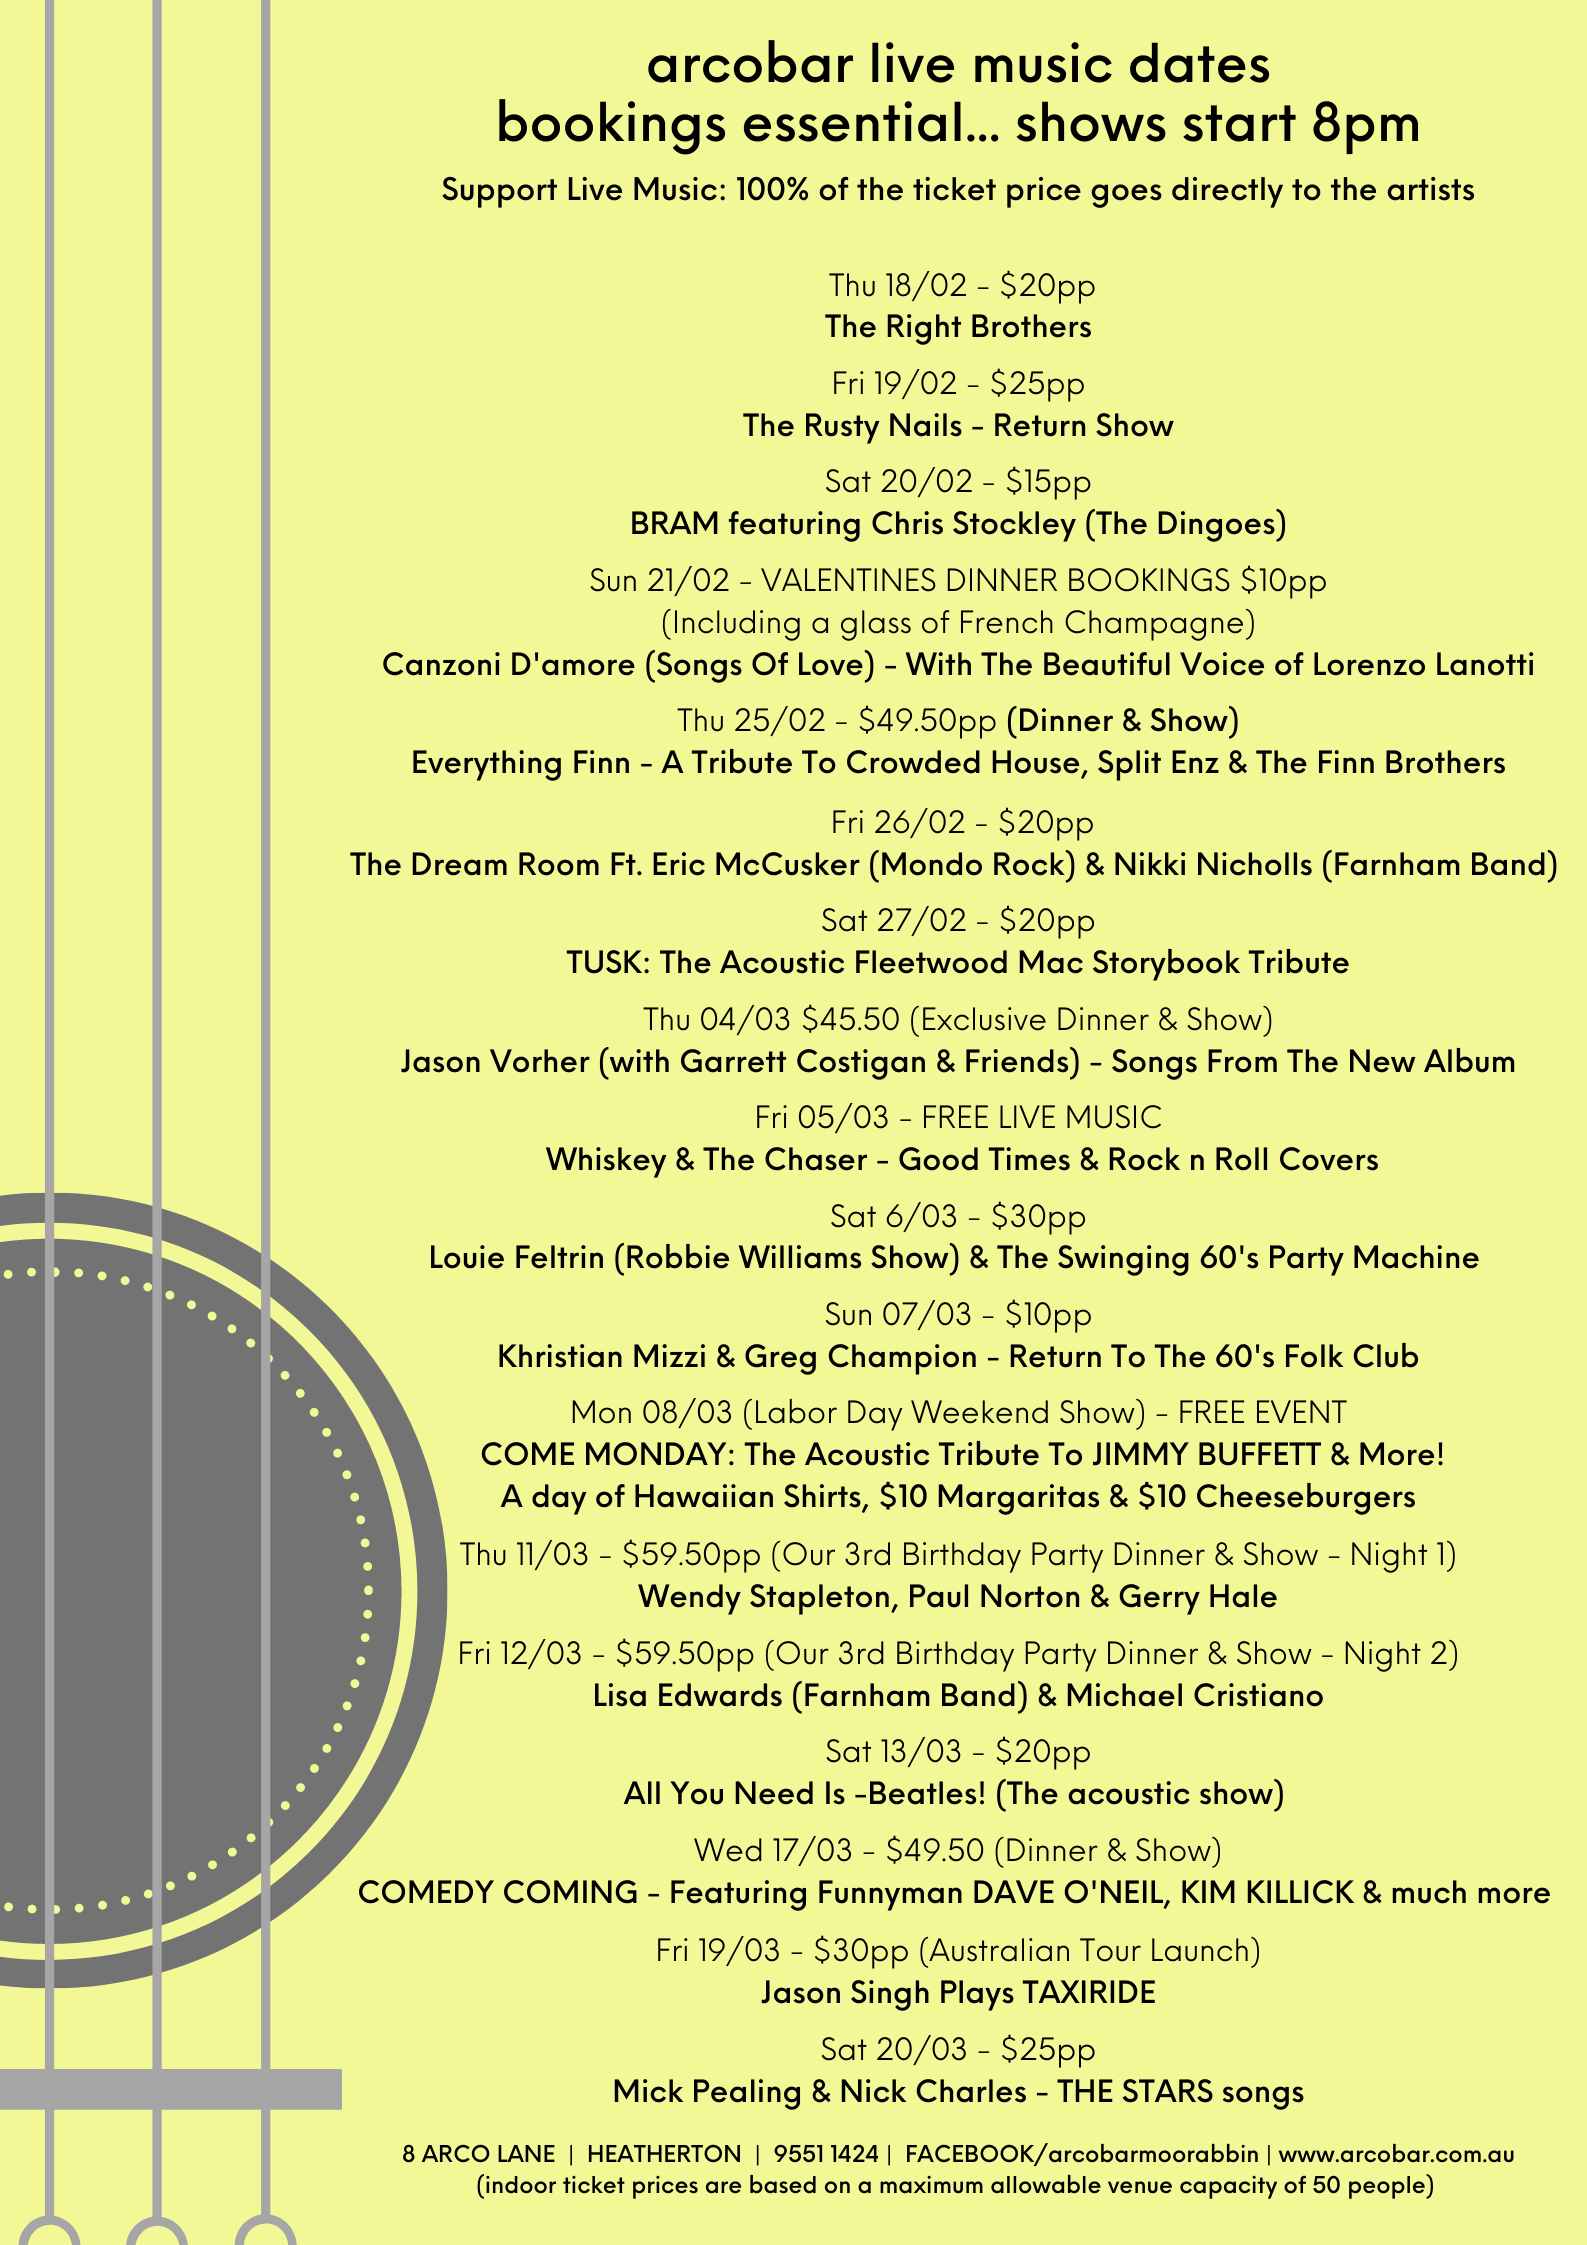 Copy-of-LIVE-MUSIC-DATES-as-at-1502a.png#asset:1650